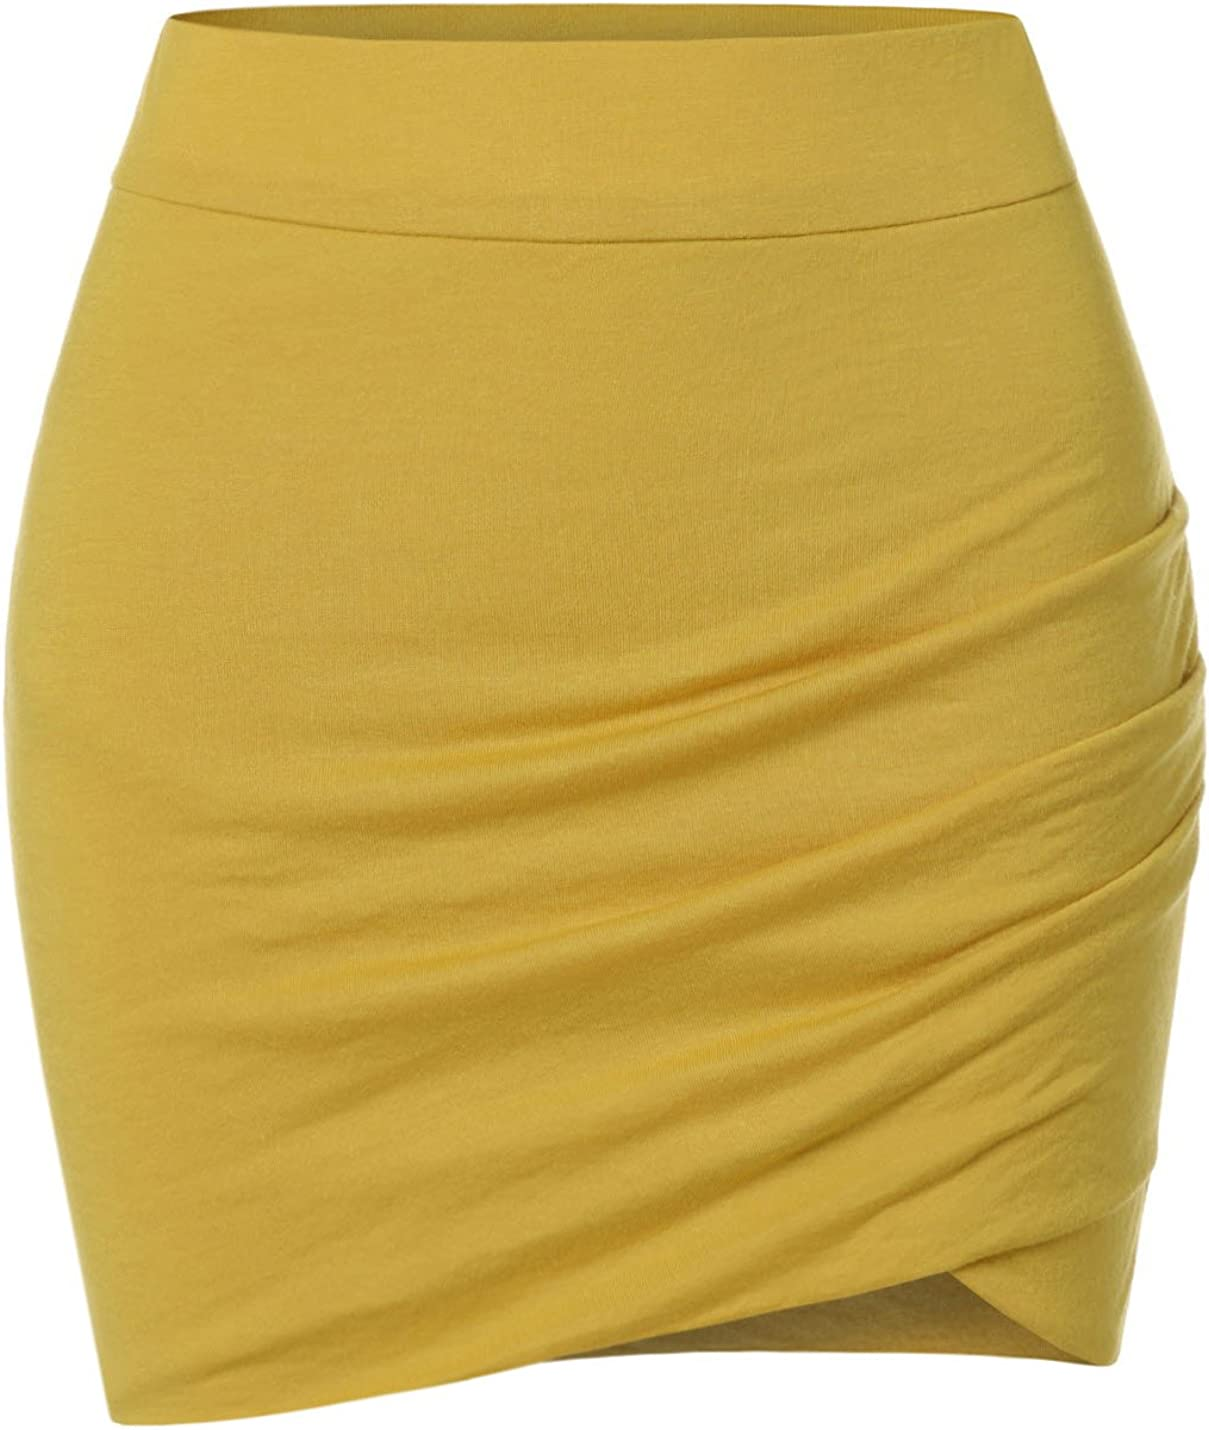 NEARKIN Womens Stretchy Waistband Max 76% OFF Skirt Sale special price Fitted Shirring Mini